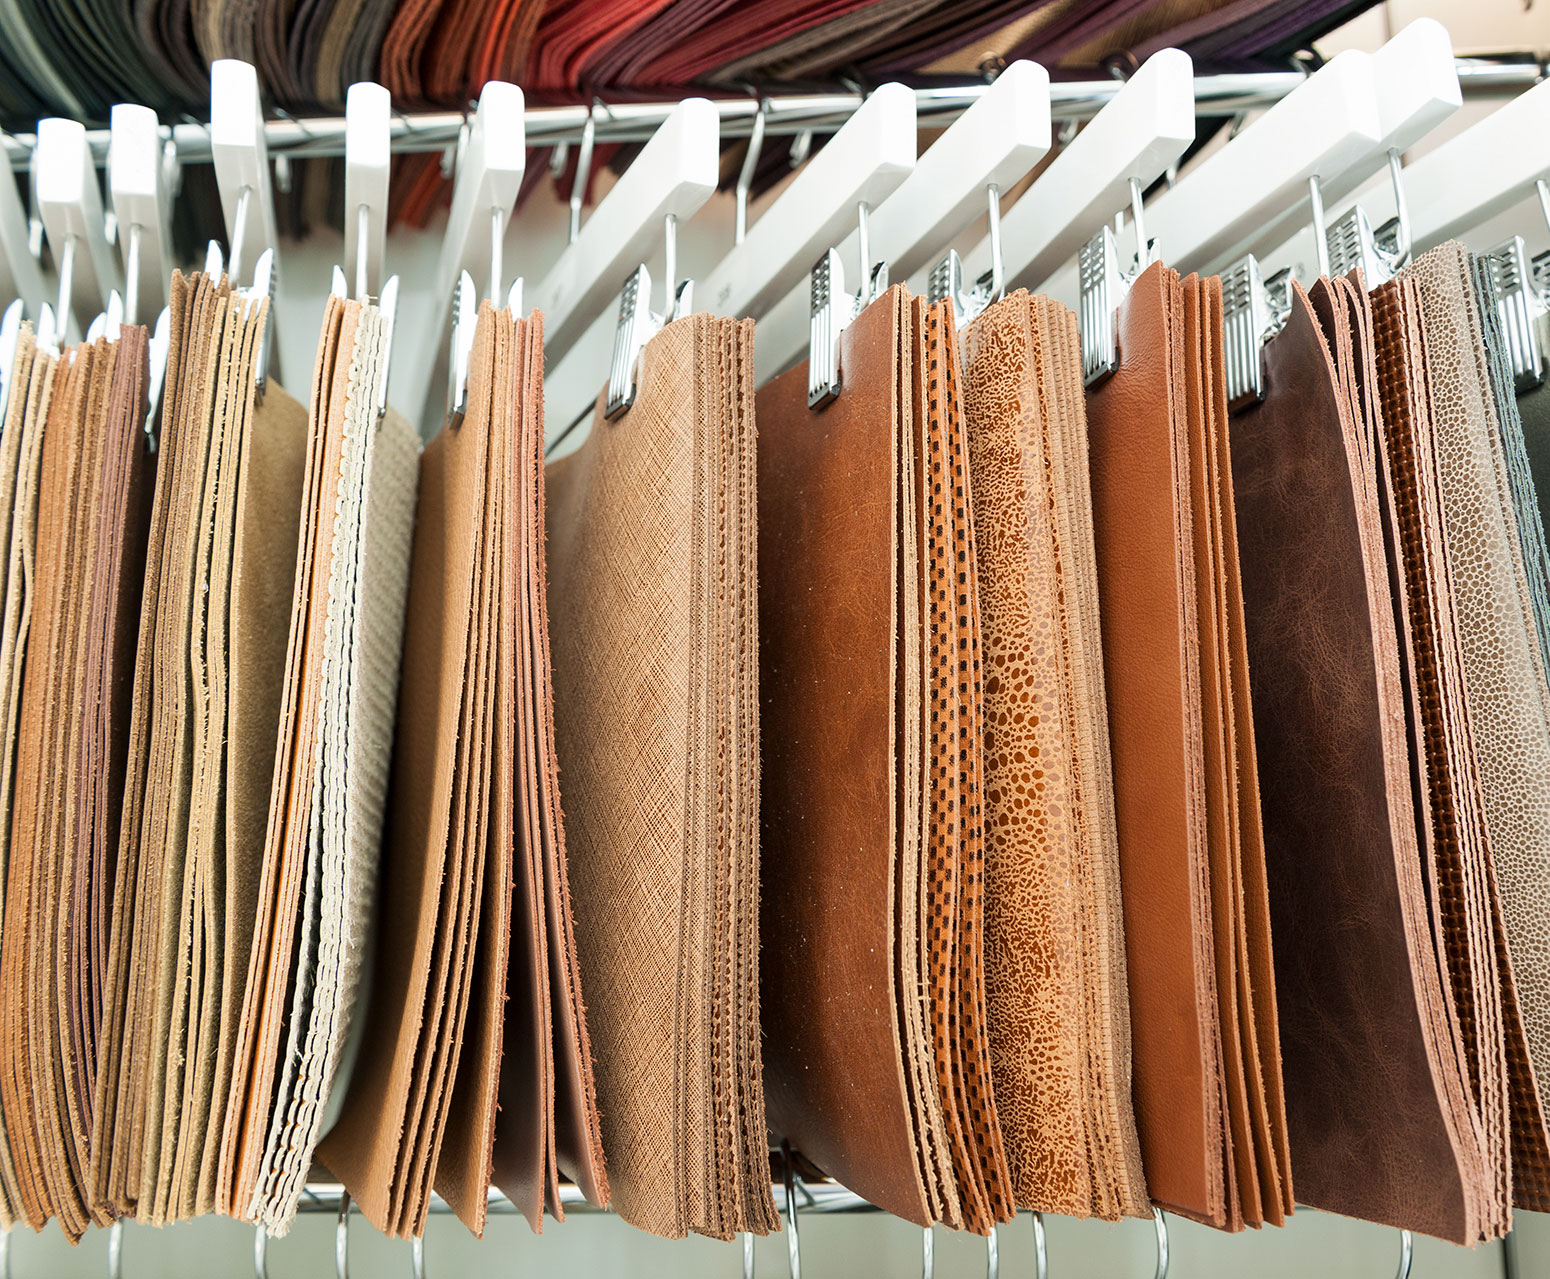 Swatches of luxurious leather.